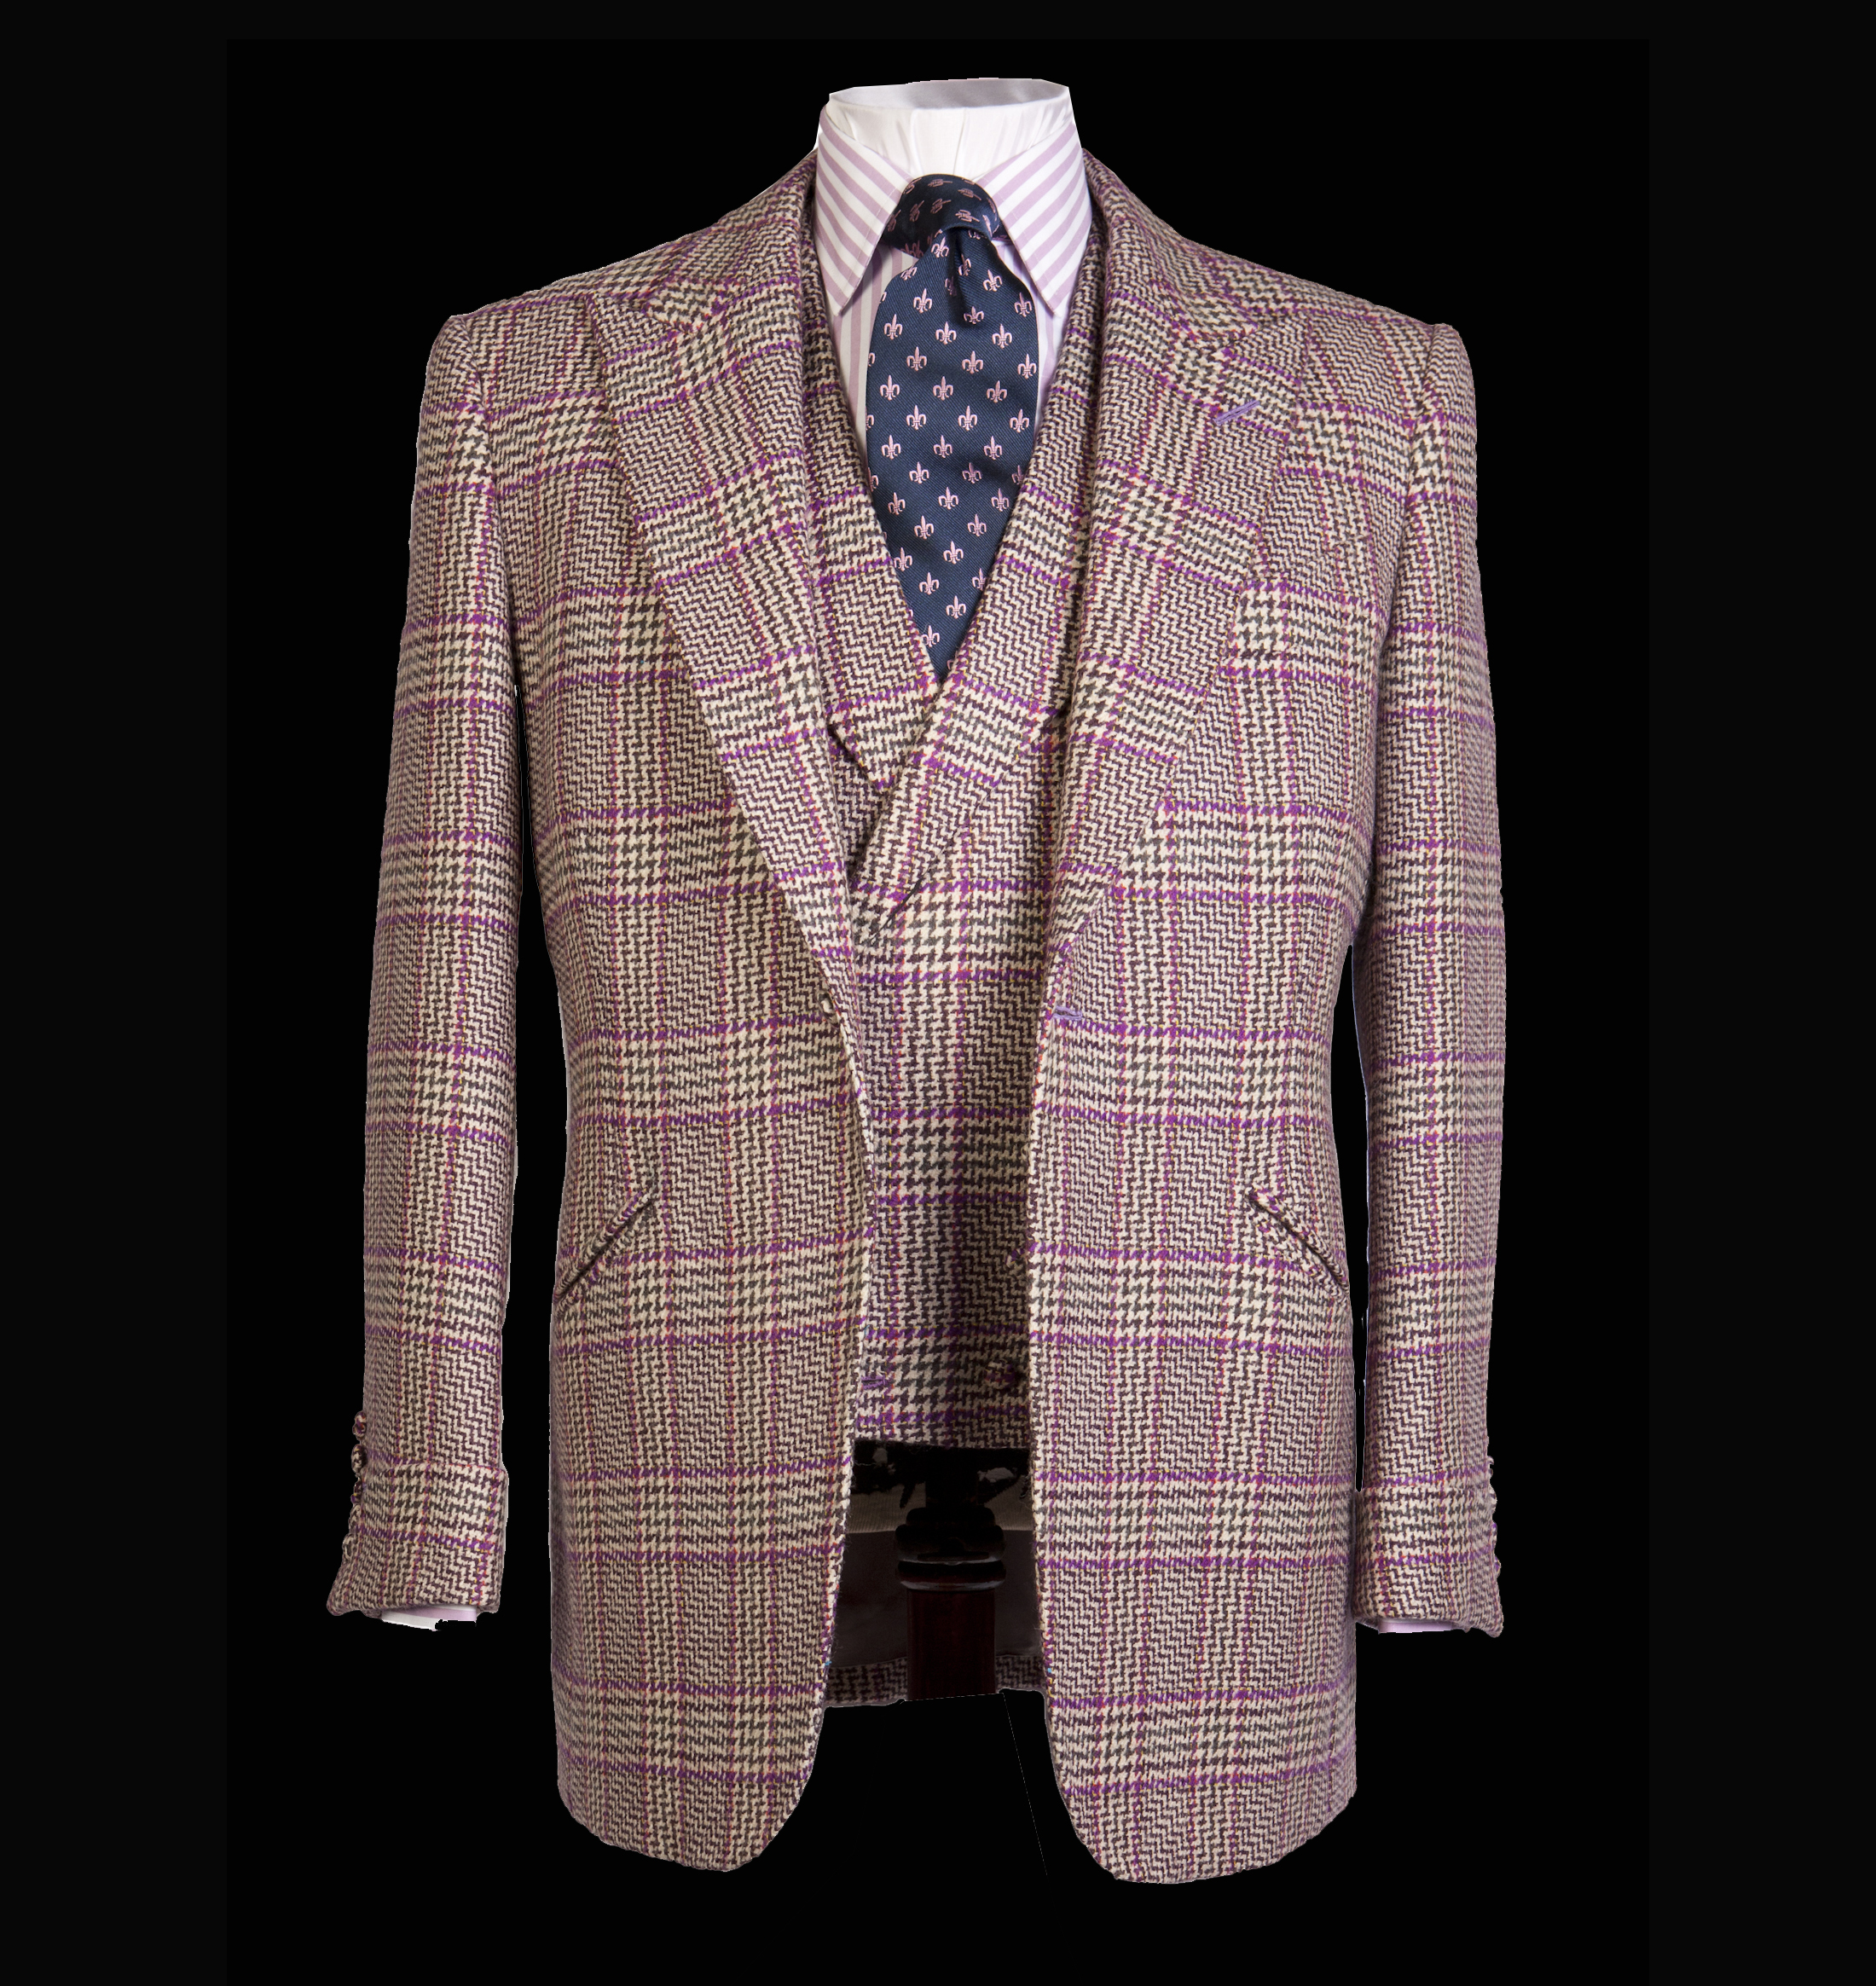 Bespoke Tweed Check Jacket and Waistcoat London